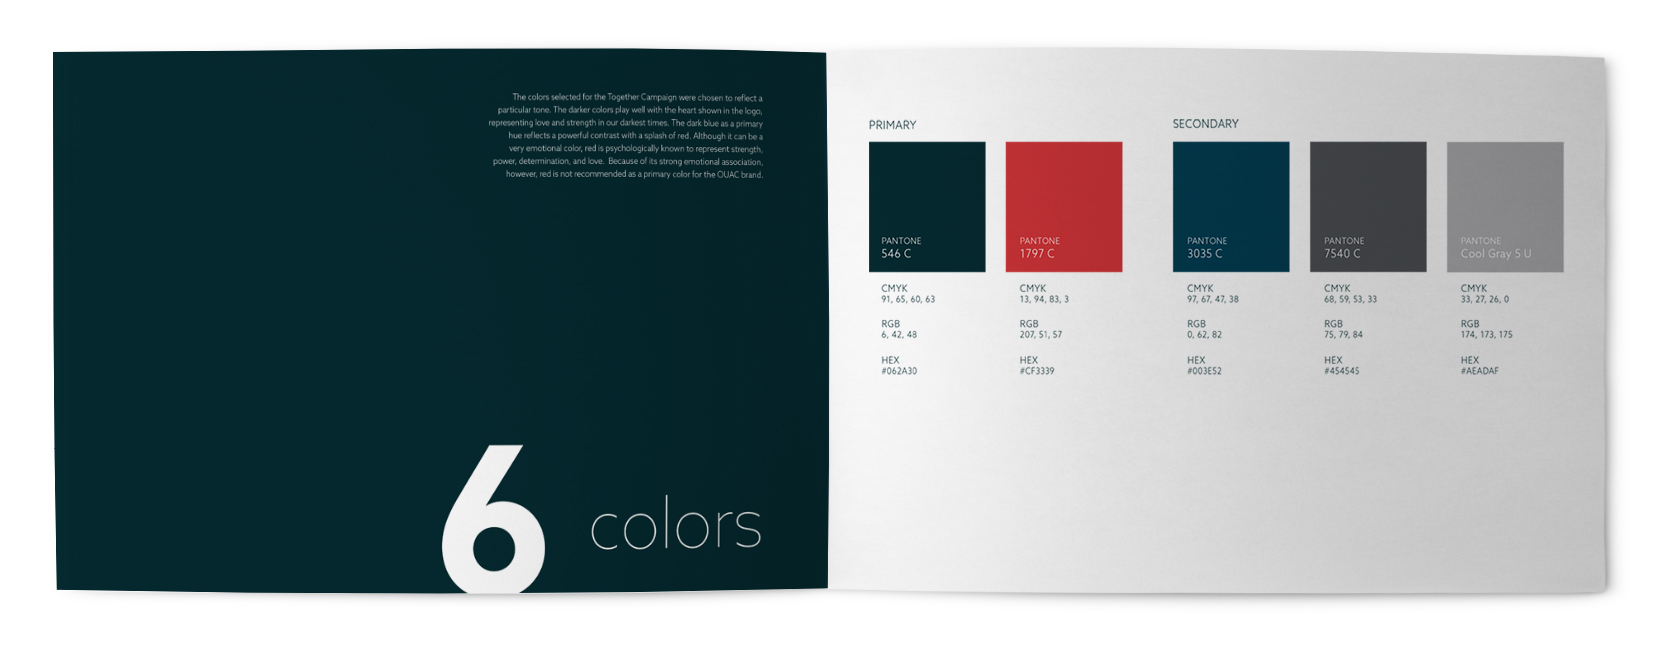 Branding Color Pallet for Together Campaign, Orlando United Assistance Center